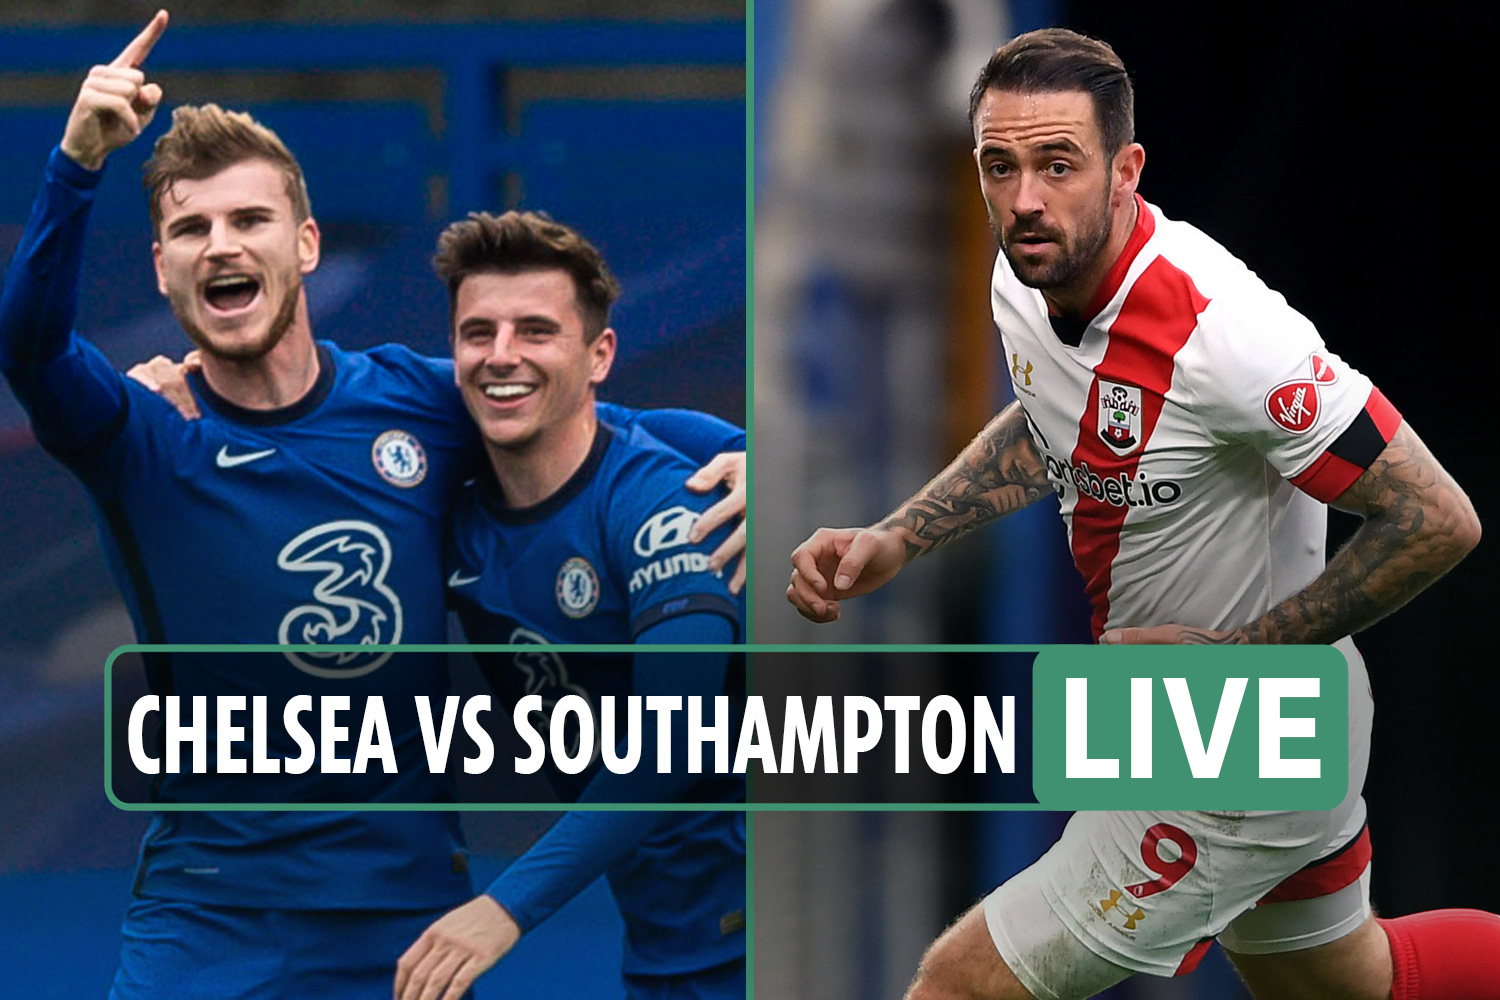 Chelsea vs Southampton LIVE: Stream, TV channel, score – Havertz fires Blues back in front after defensive woes